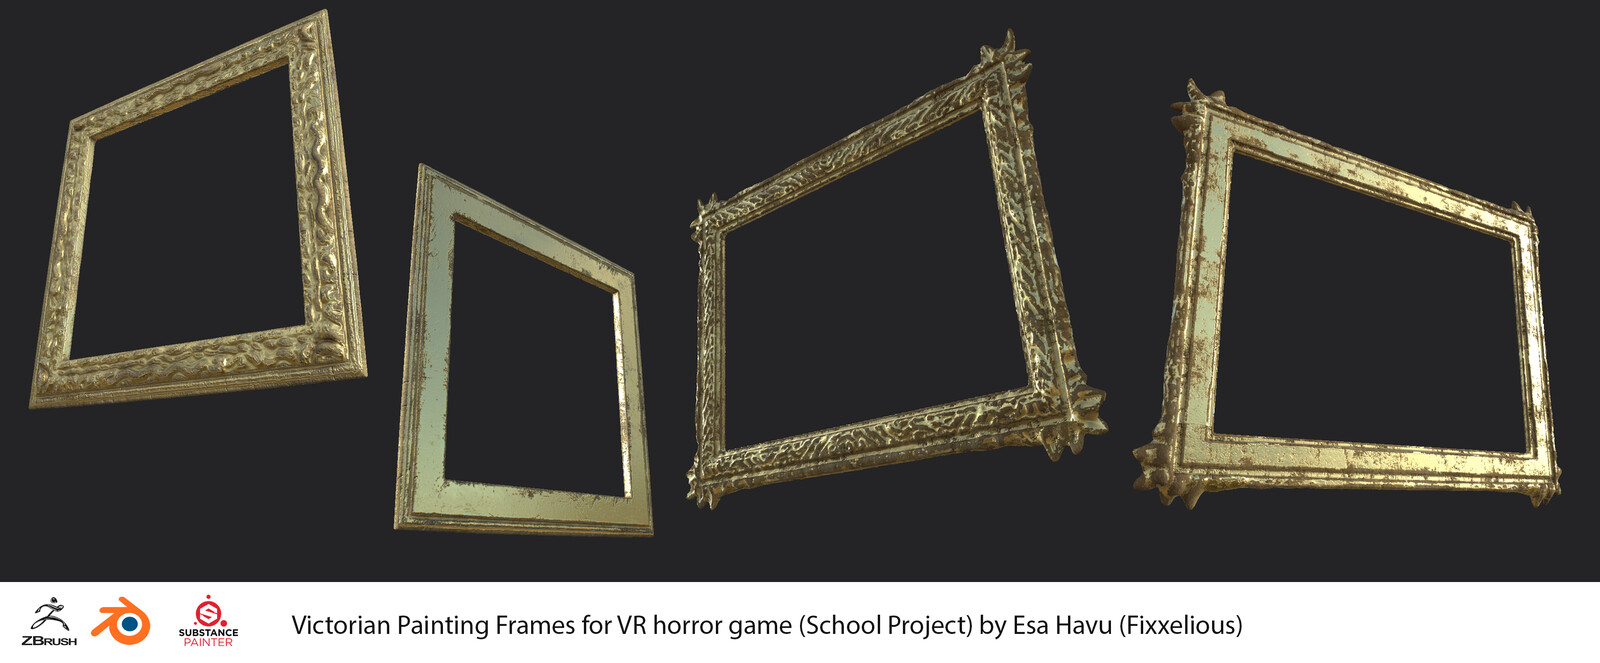 Victorian Painting Frames [VR horror game]